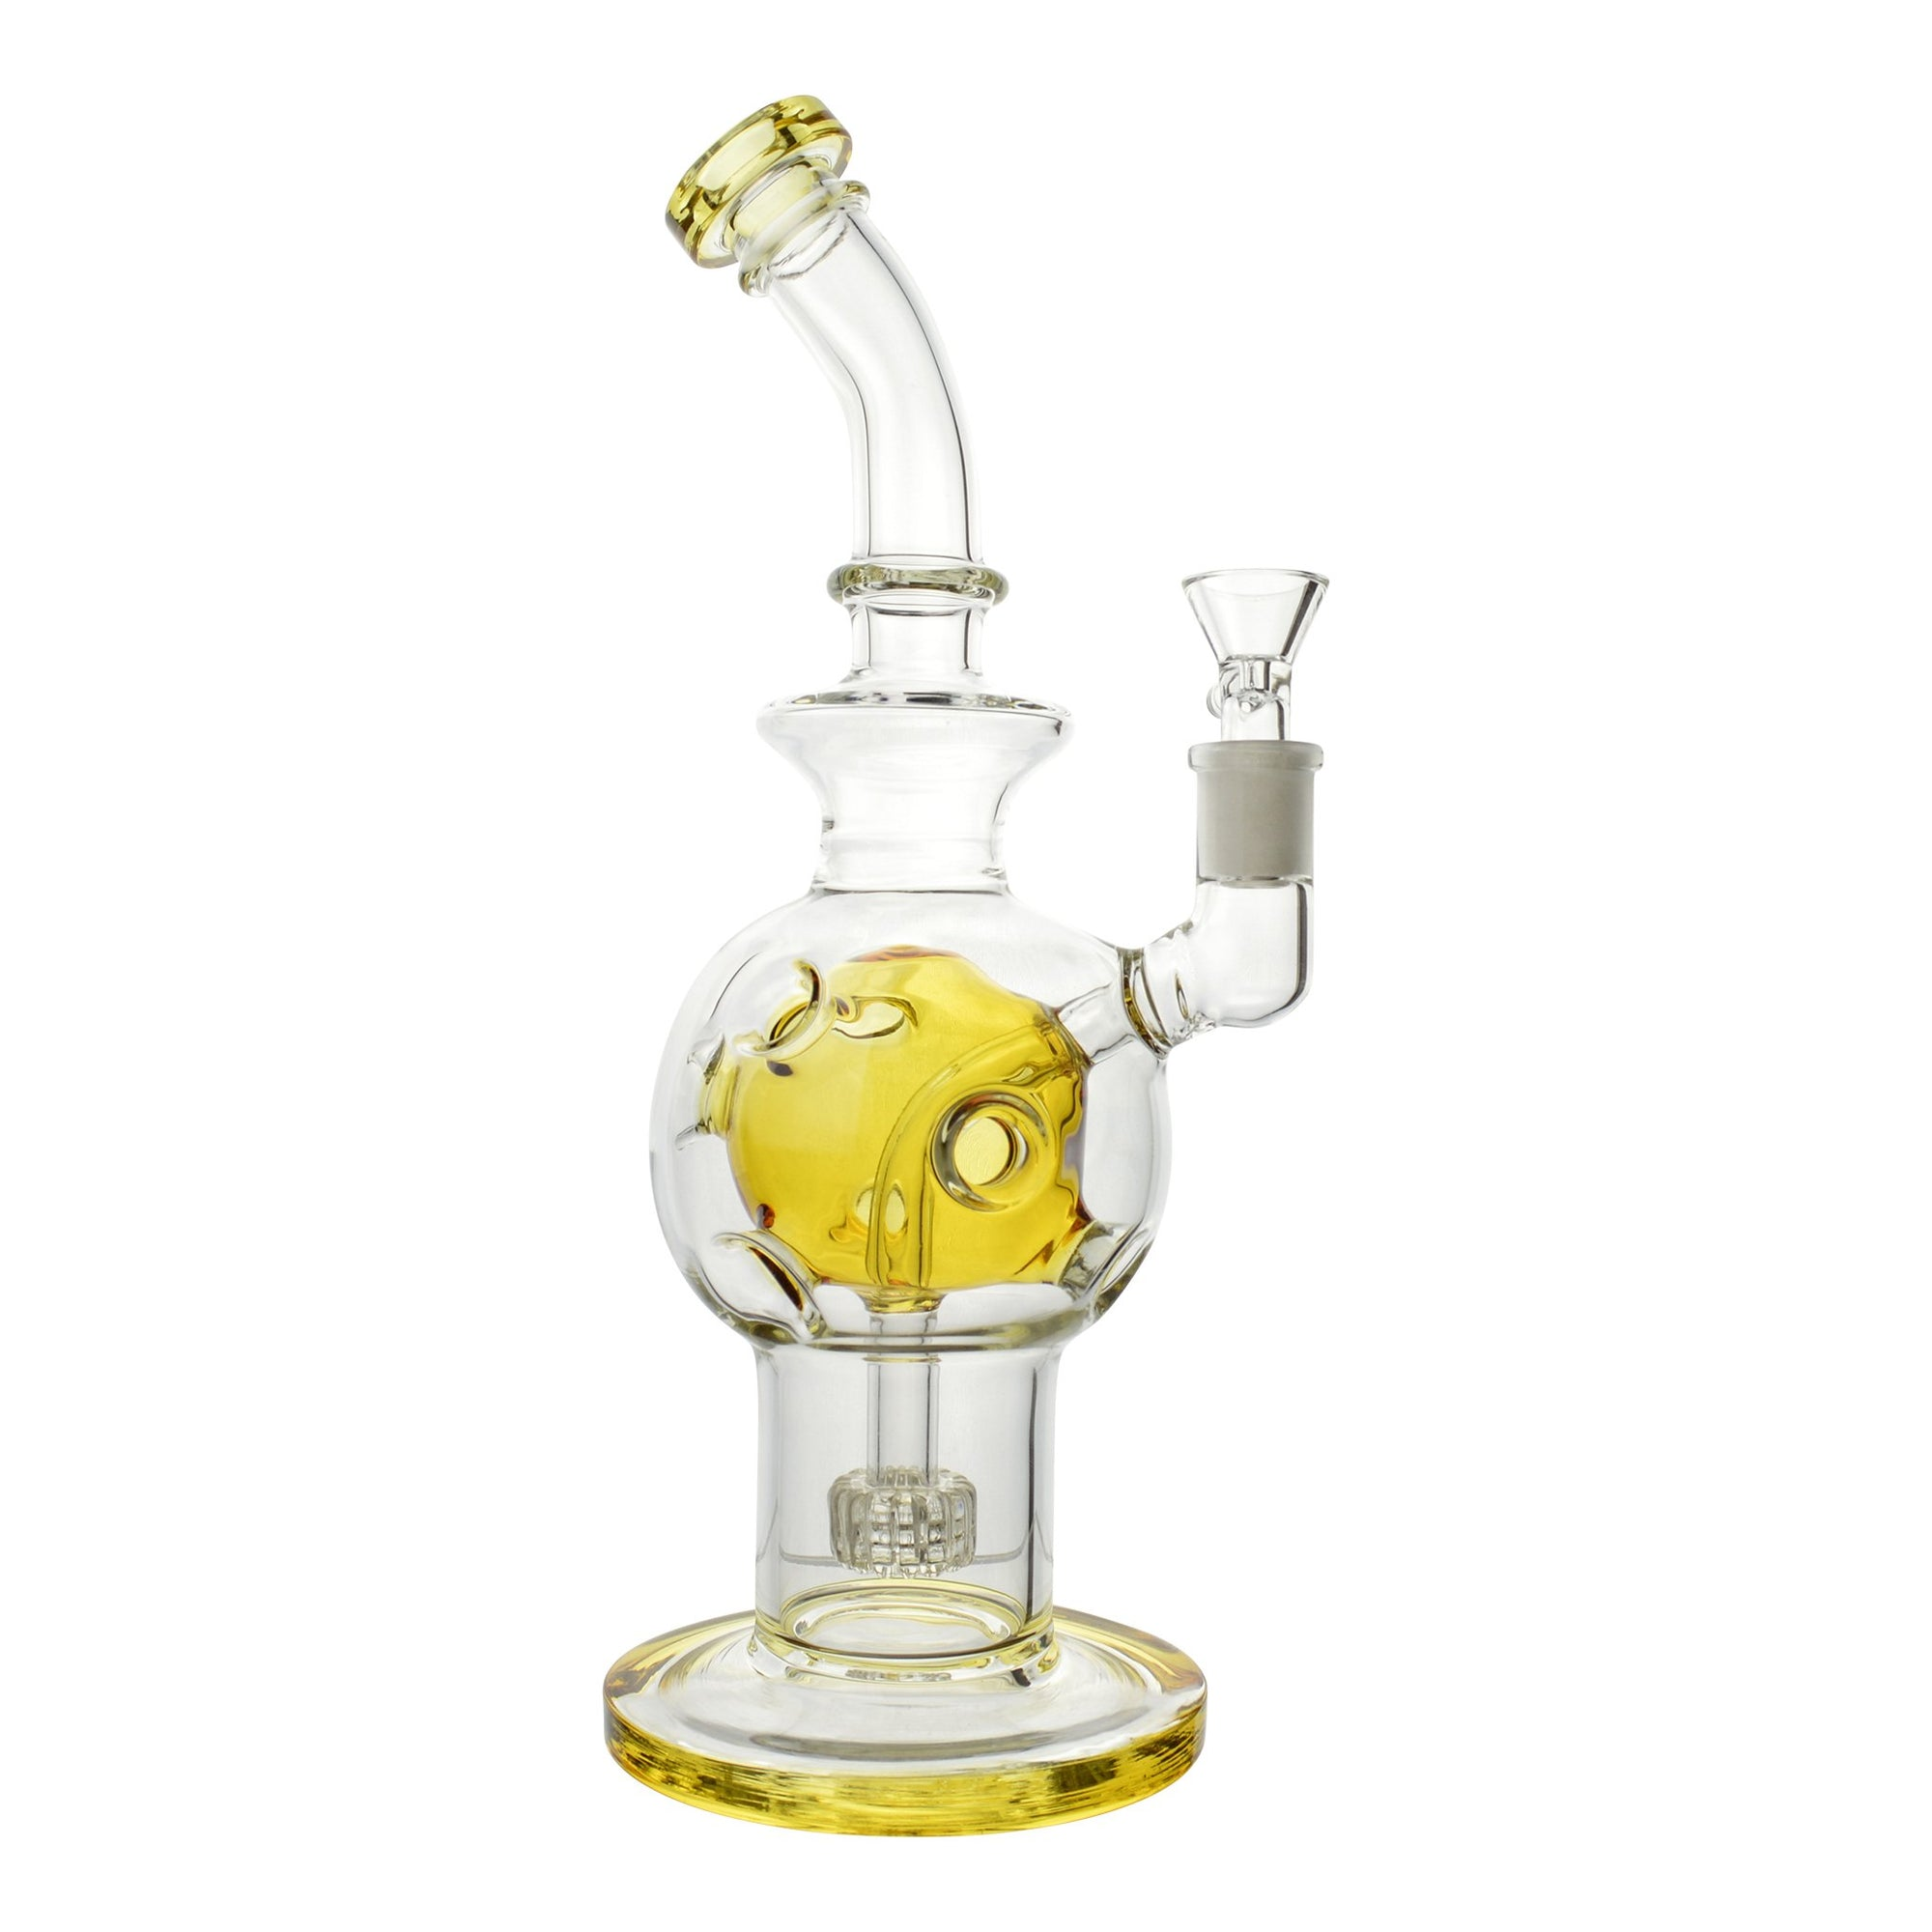 Full body shot of 11-inch clear glass bong smoking device yellow accents asteroid round perc mouthpiece tilted left